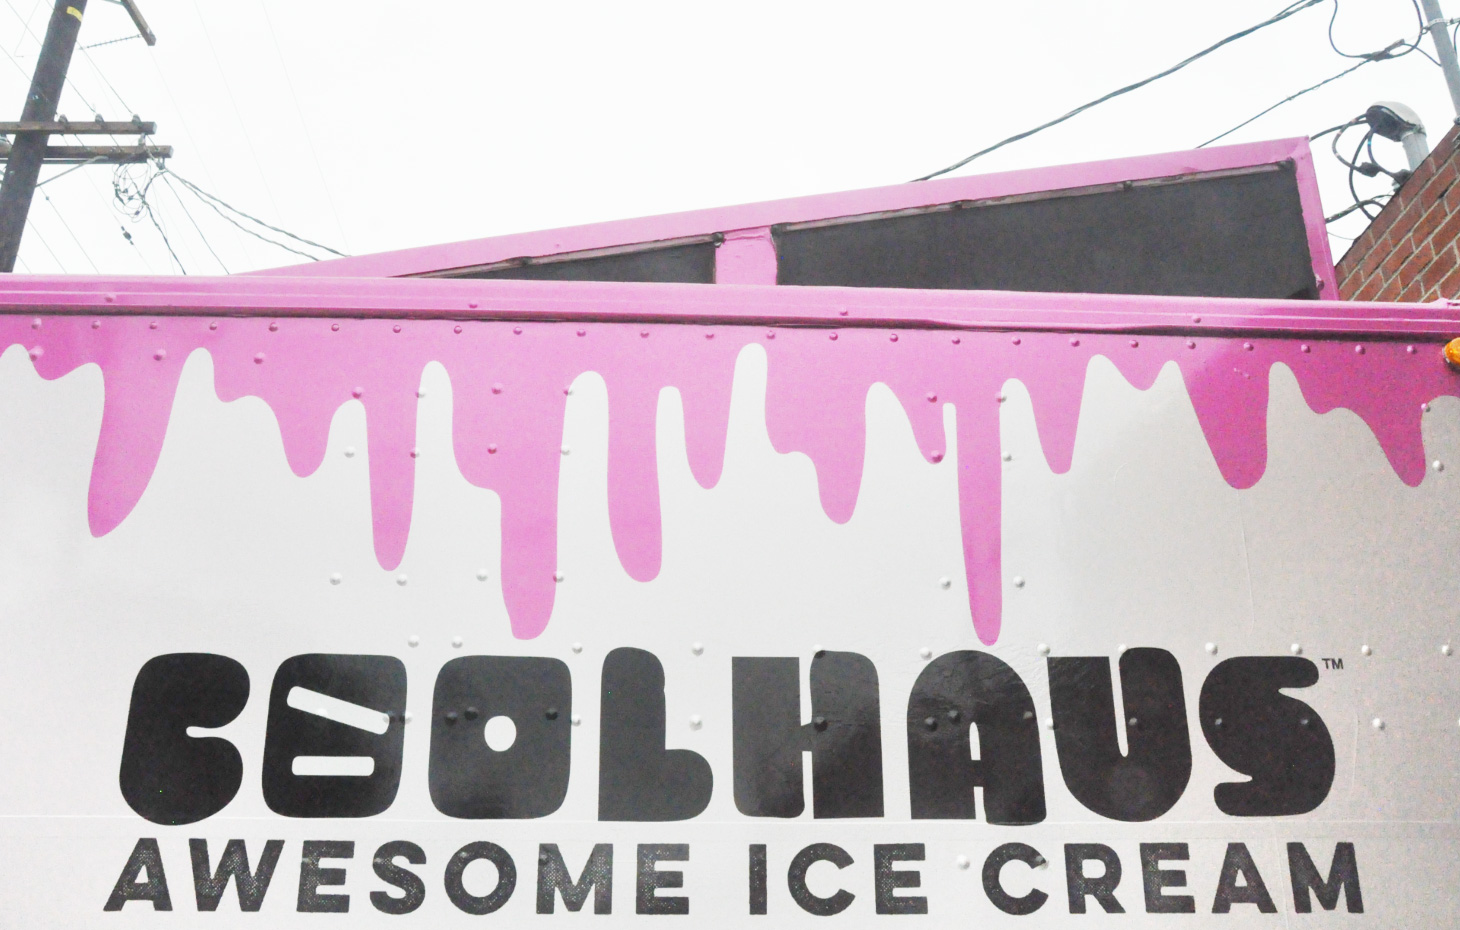 Coolhaus Ice Cream Truck